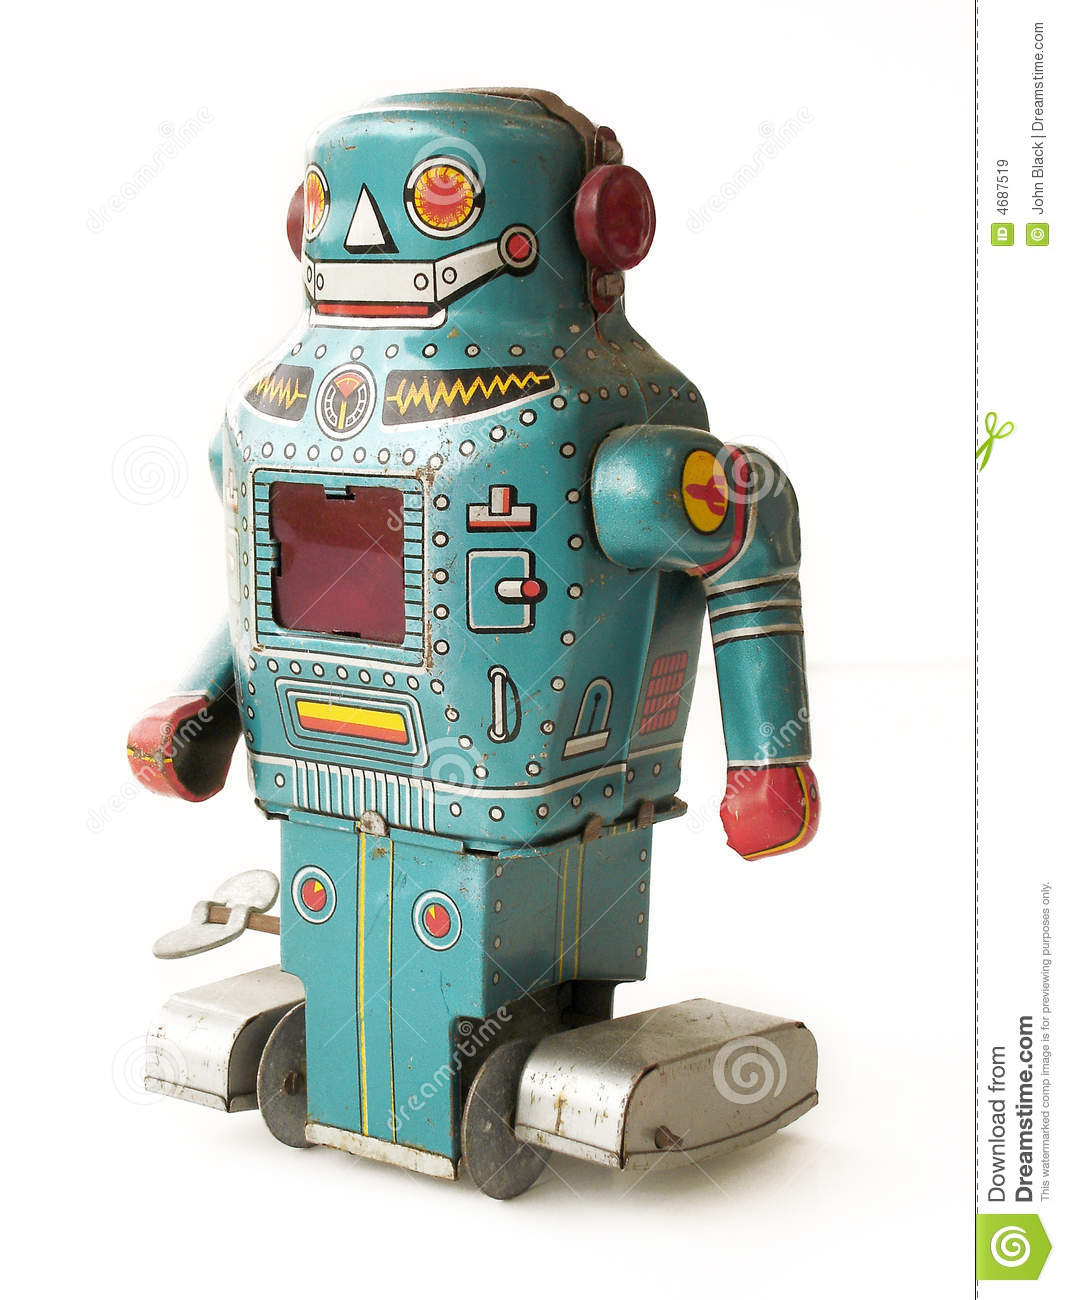 Vintage Toy Robots : Vintage toy robot stock image of retro chip